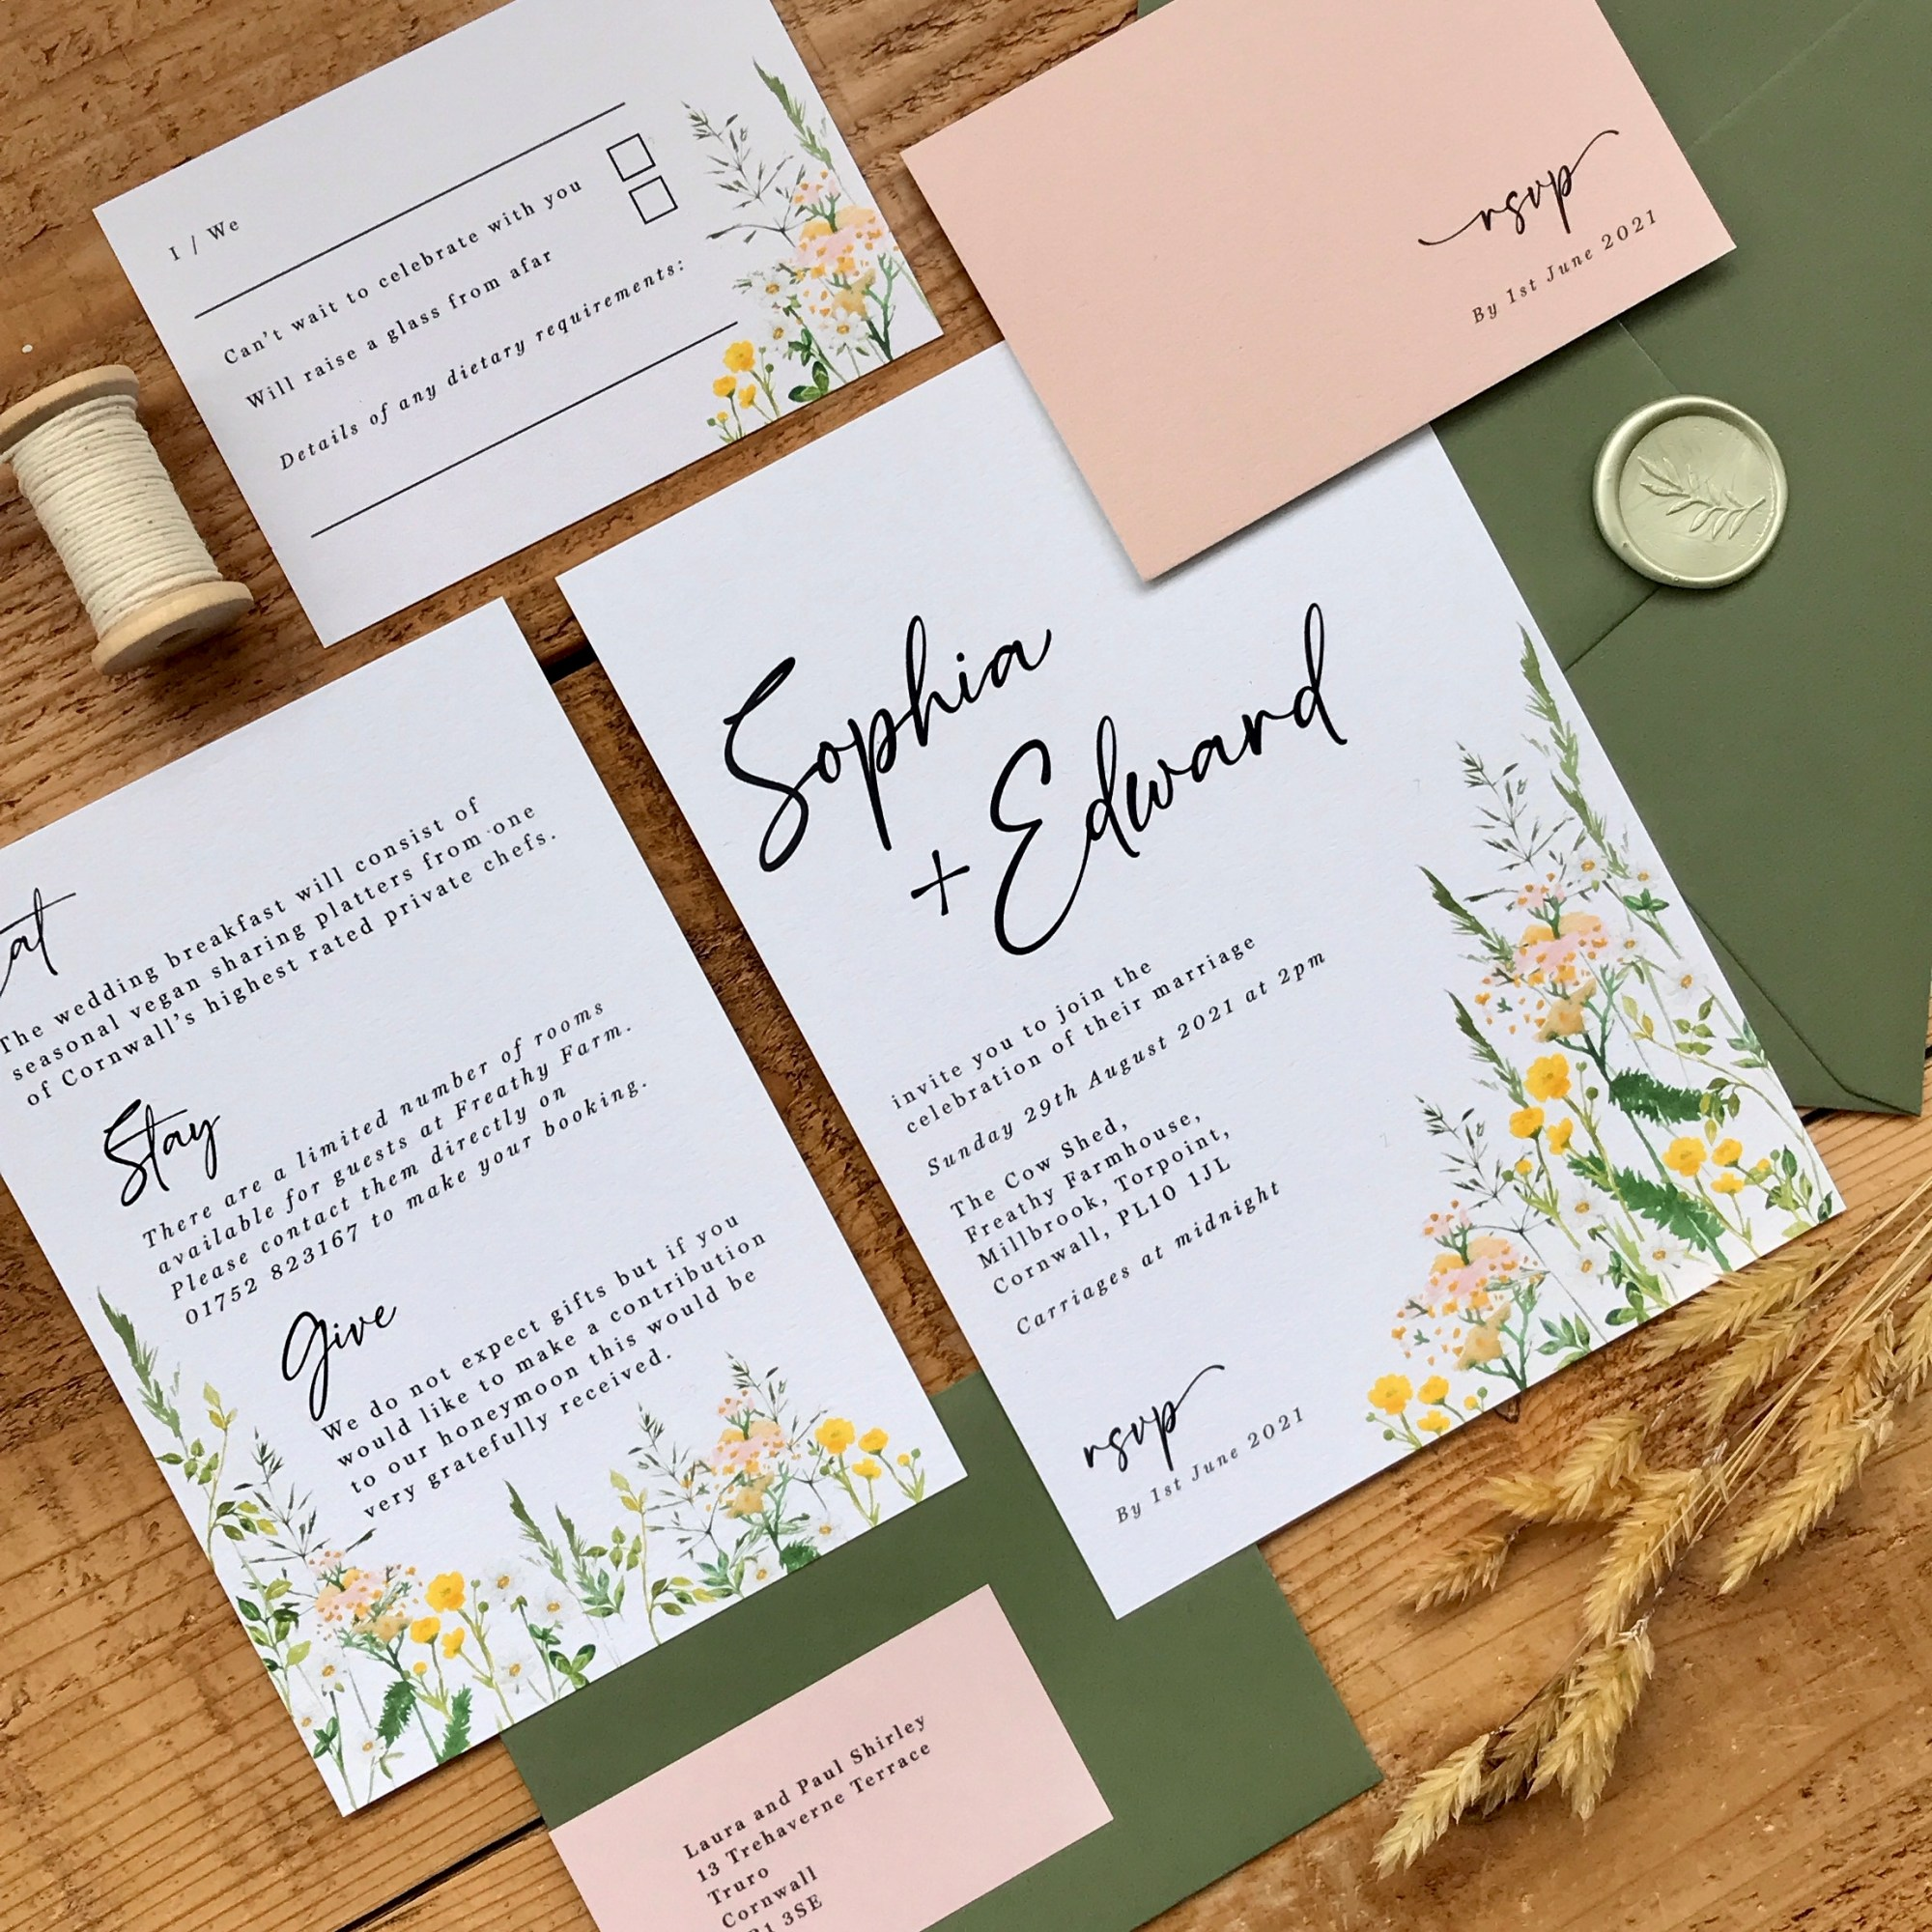 meadow, wildflower, simple, foliage, green, neutral, grass, grasses, wild, wedding, invitation, invites, invitations, eco, recycled, Cornwall, Cornish, stationery, Laura Likes